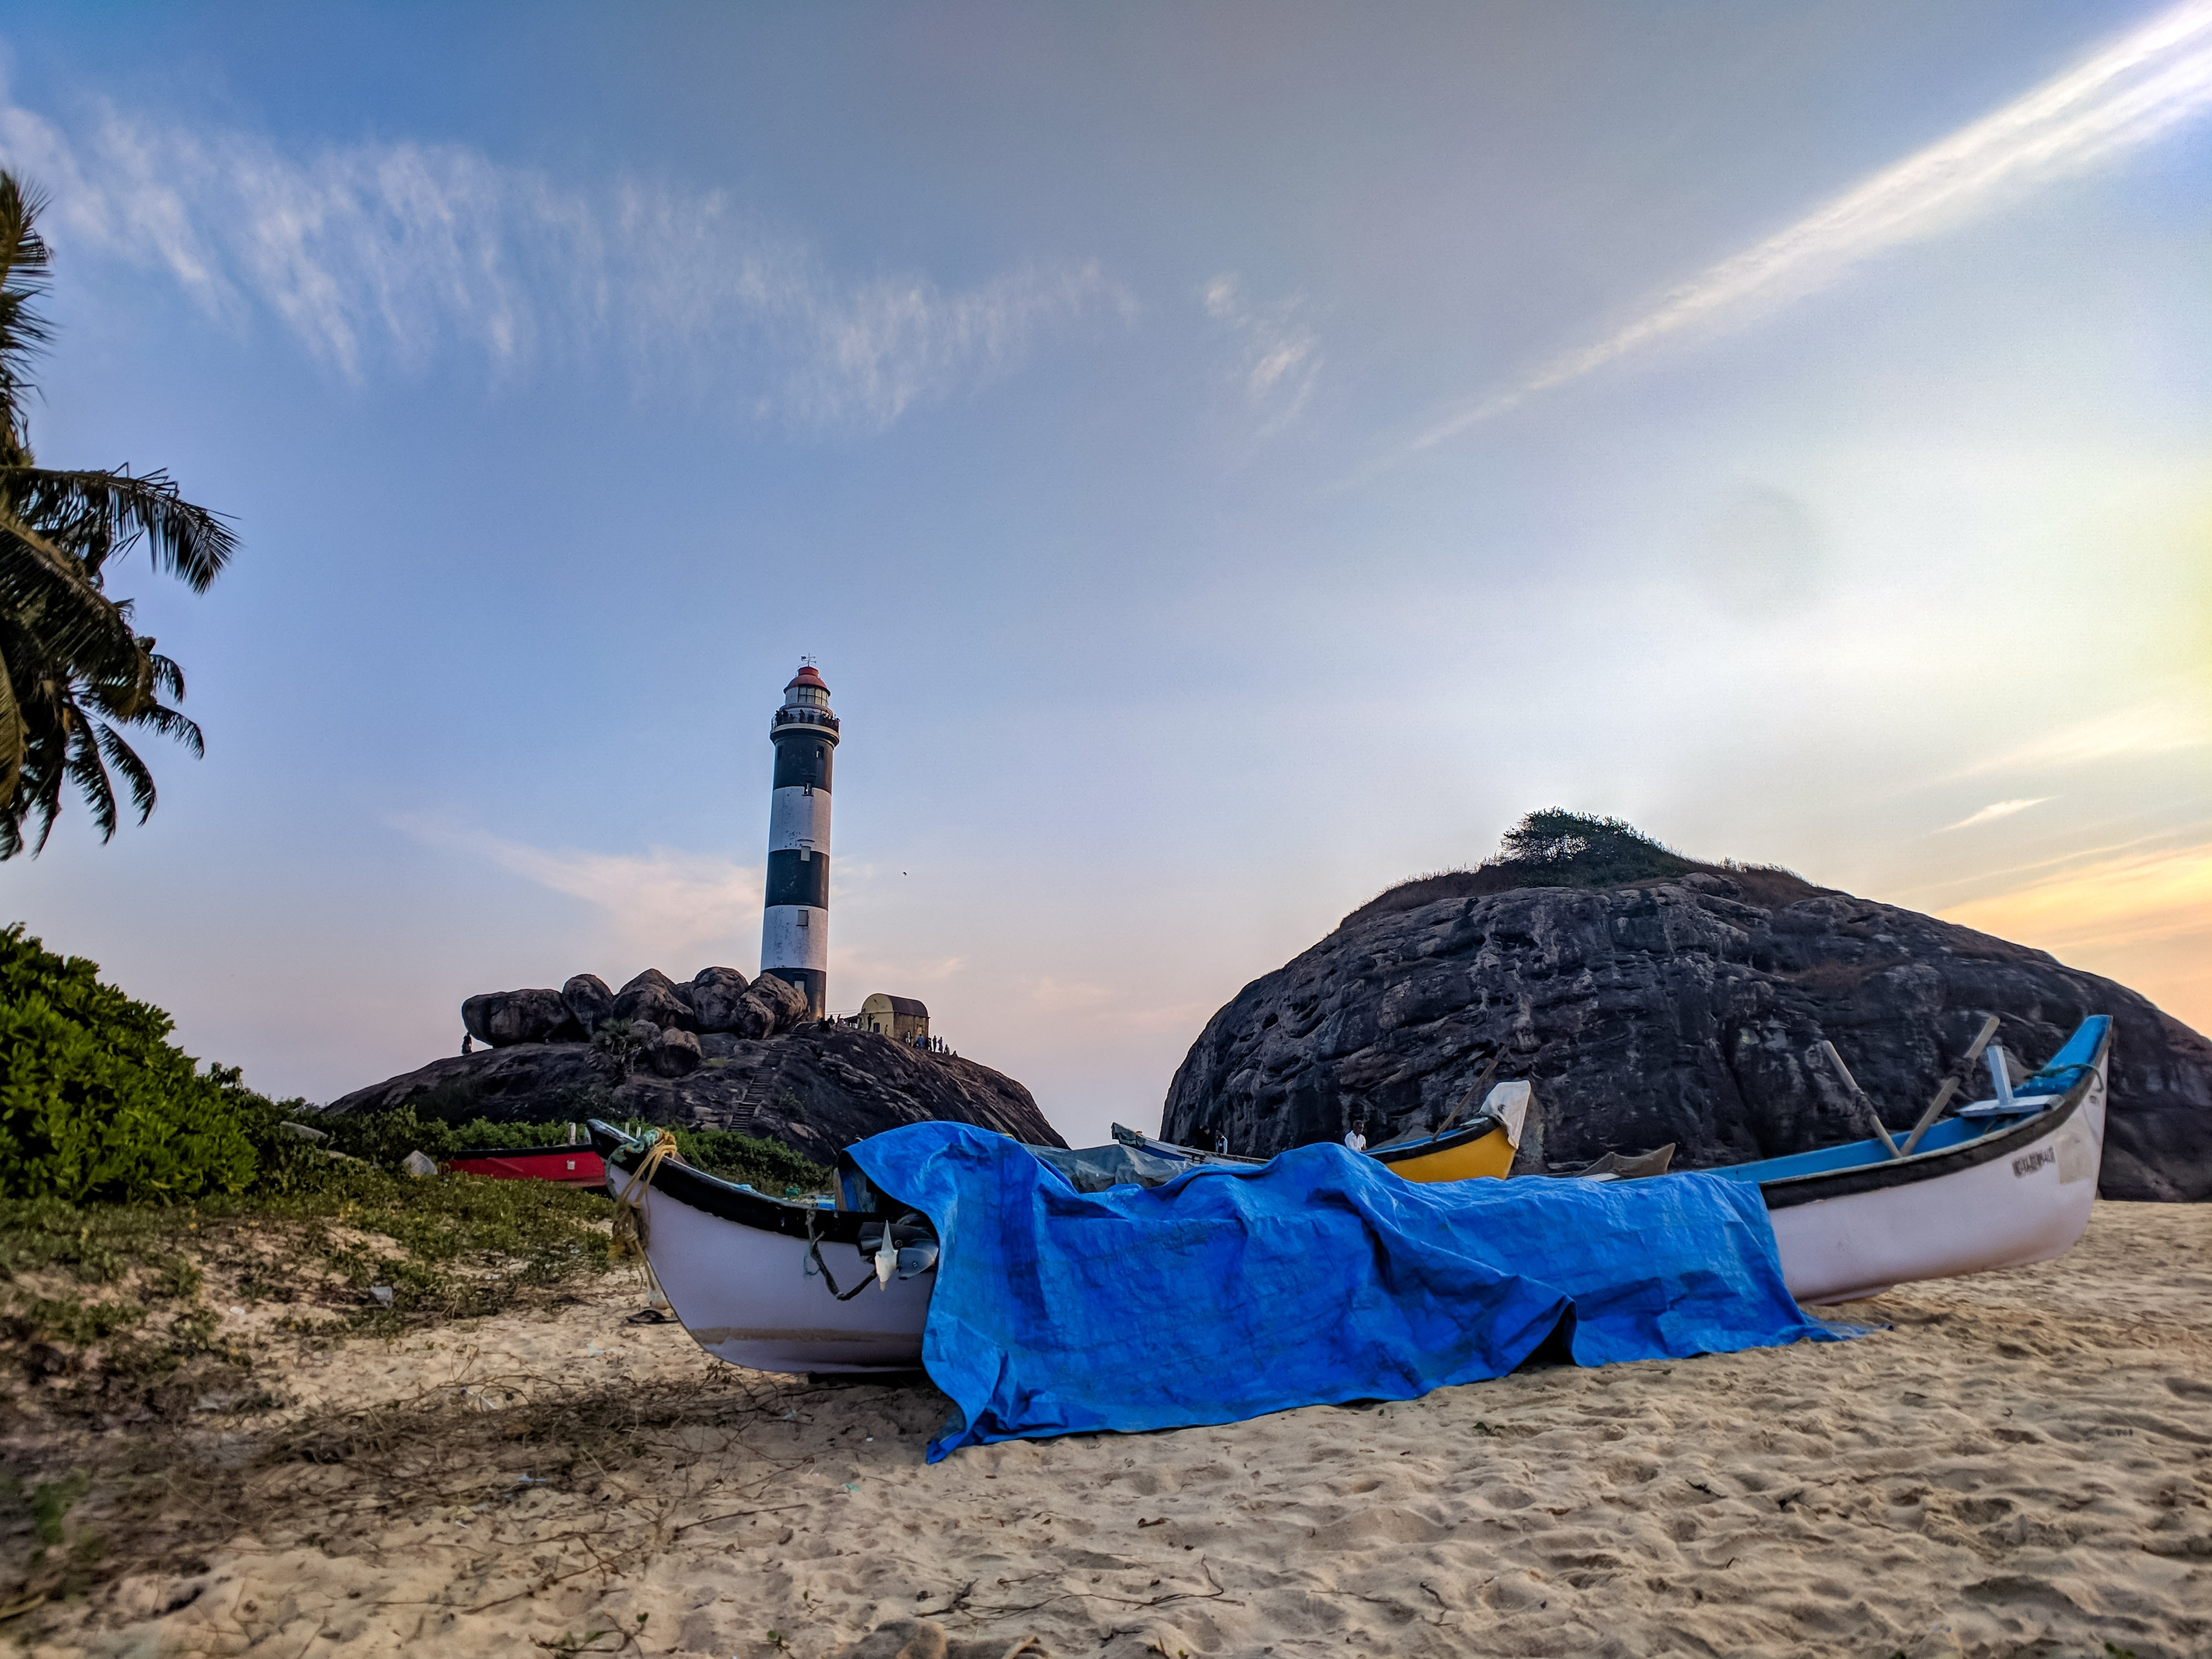 White canoe with blue cover on sand photo